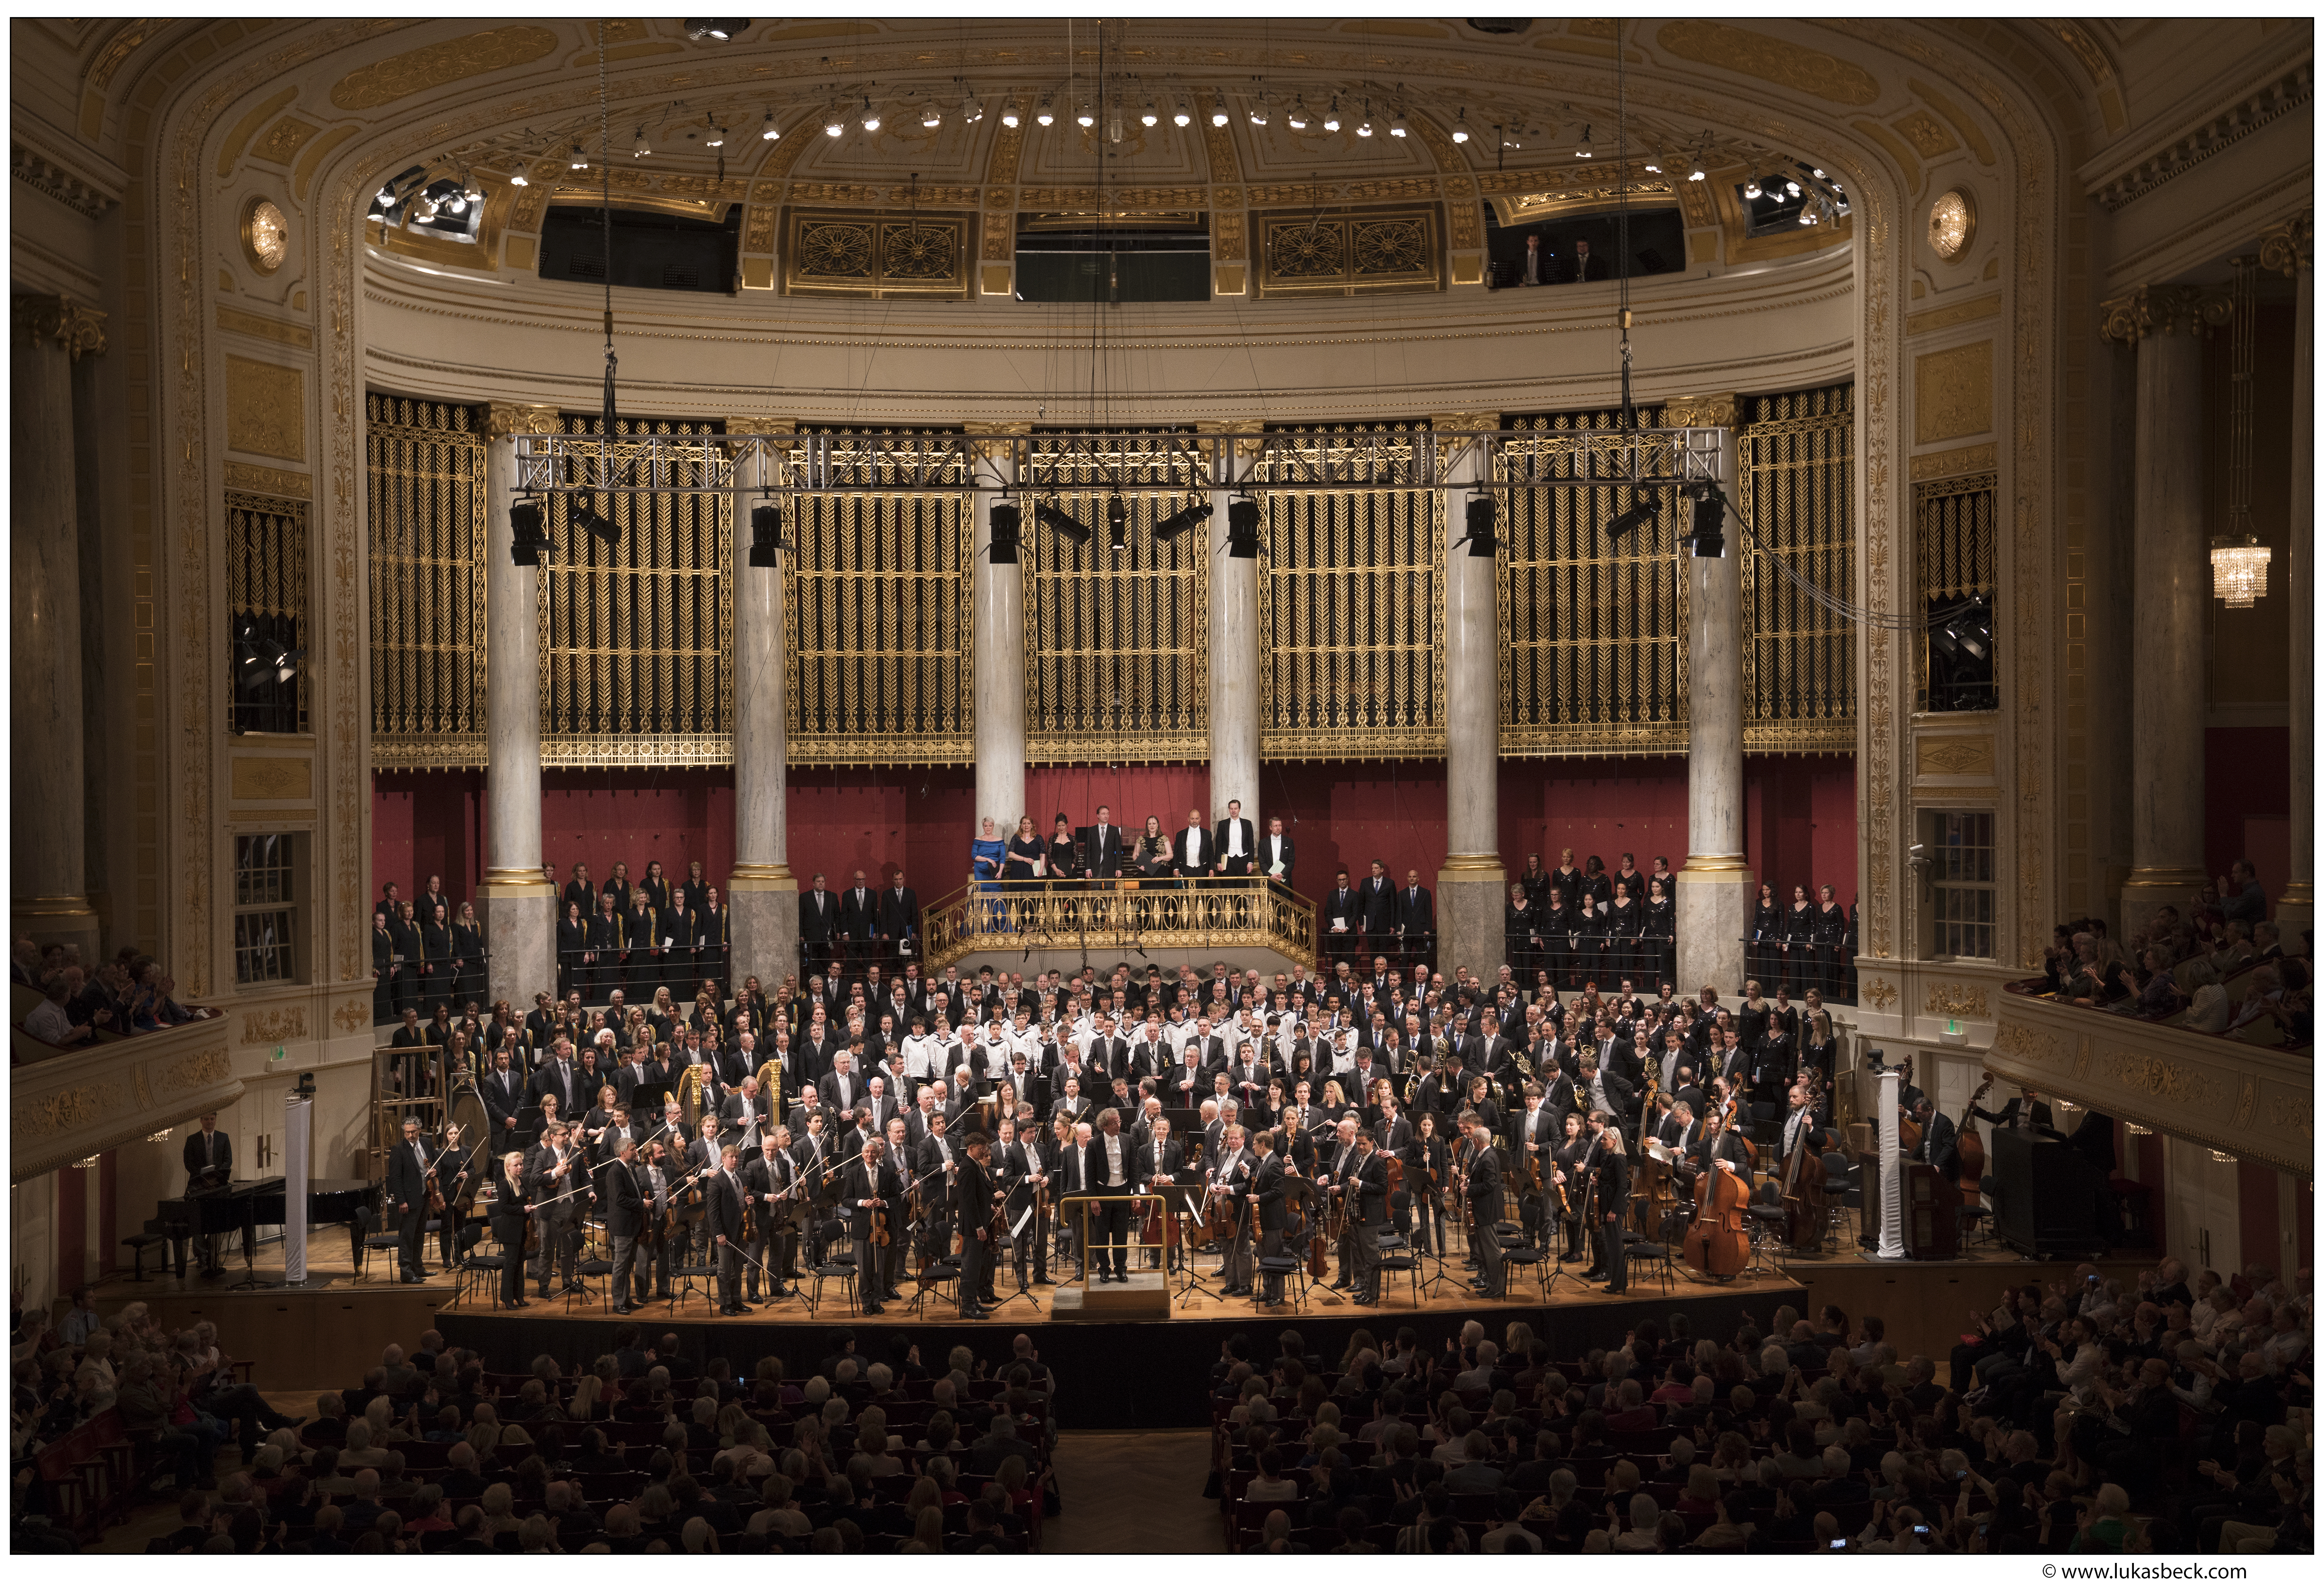 Franz Welser-Möst and the Vienna Philharmonic at the Wiener Konzerthaus conducting Mahler 8